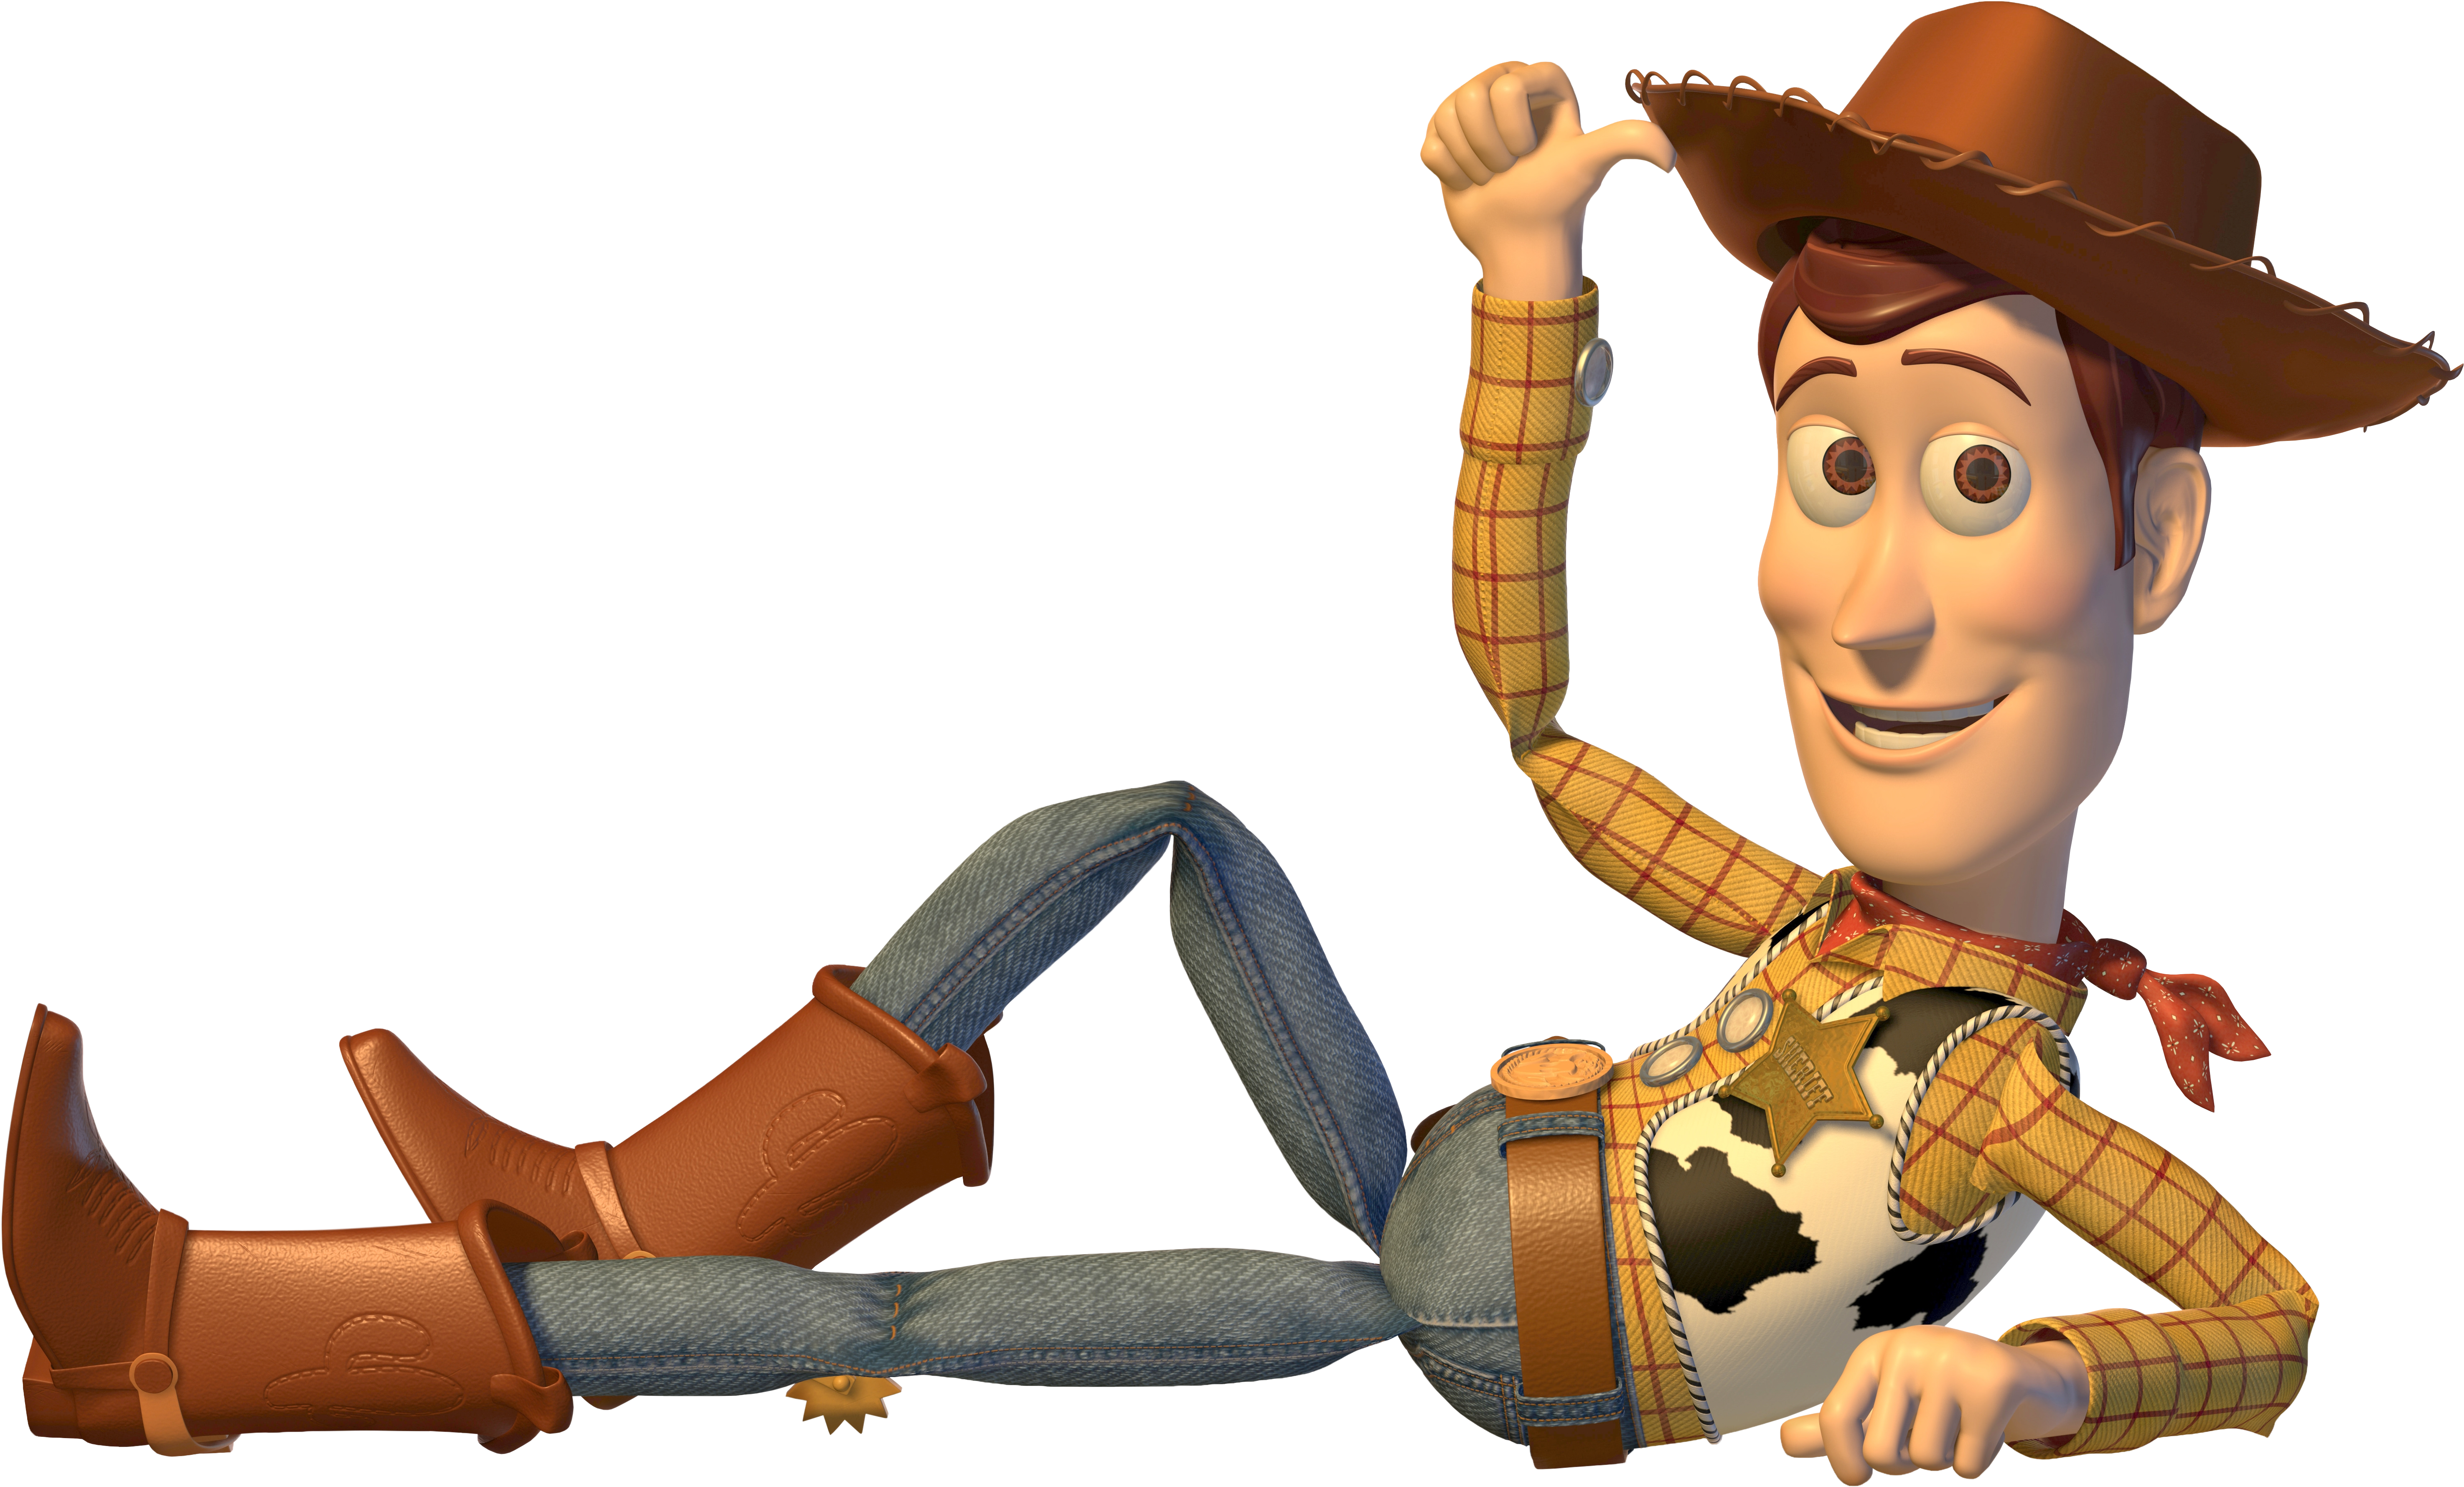 Sheriff Woody Toy Story Buzz Lightyear Tom Hanks Image.